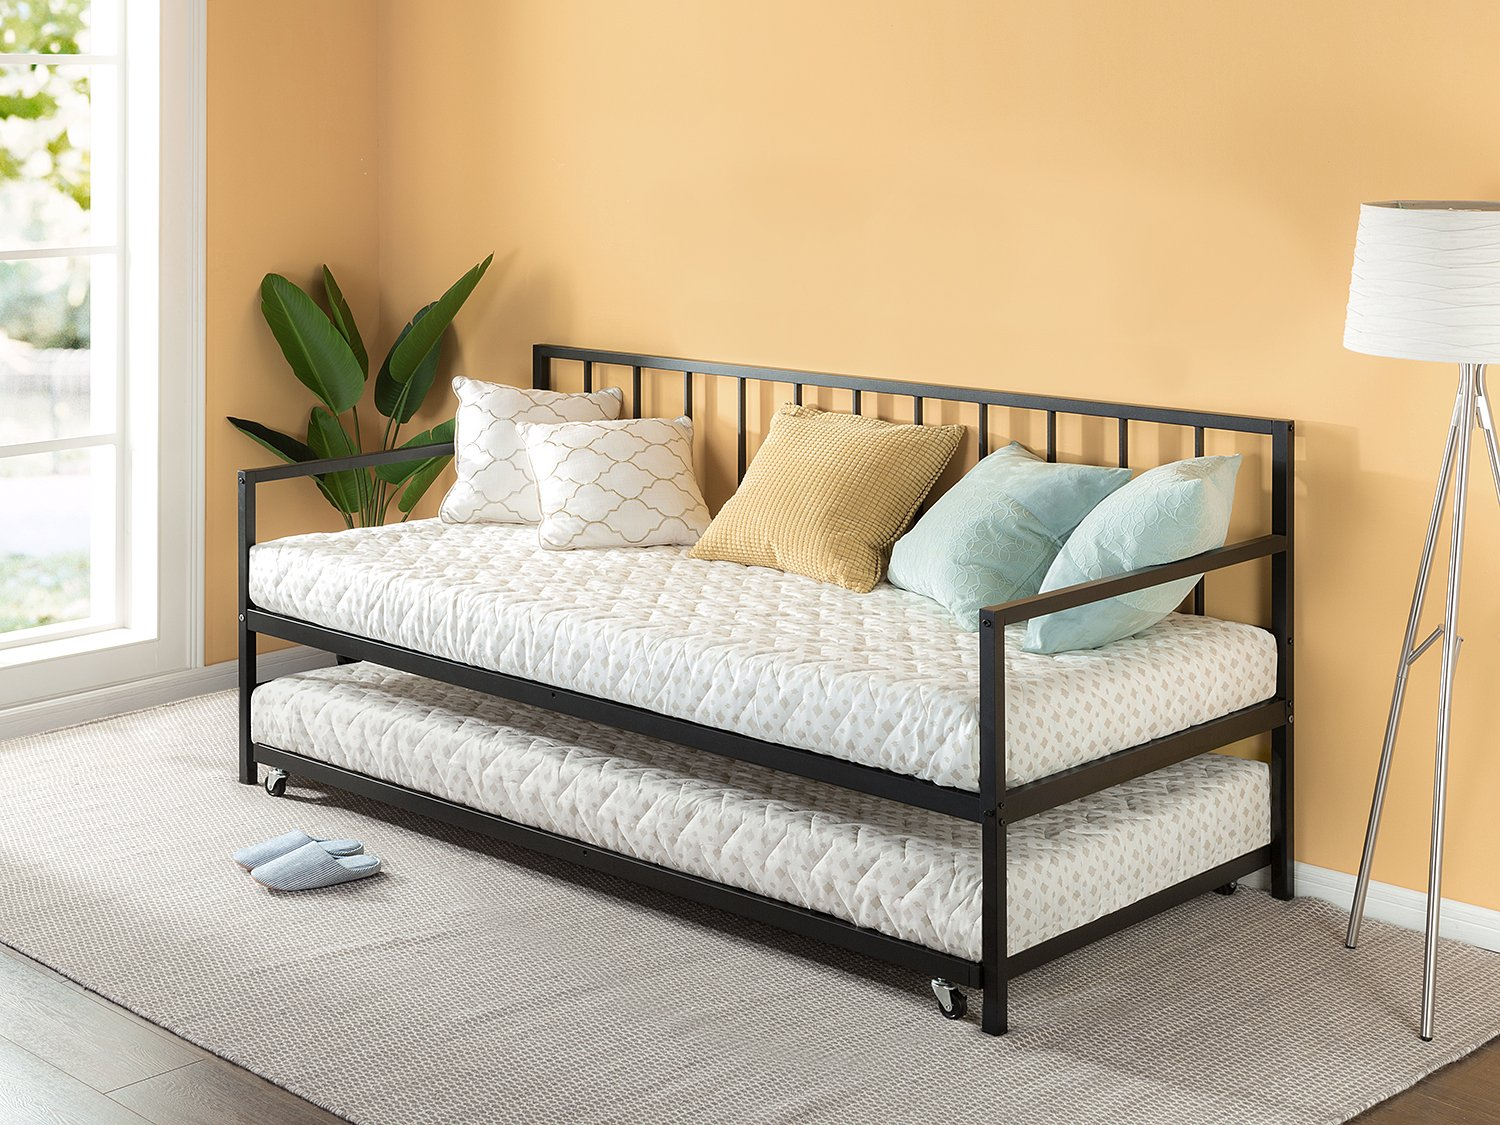 Zinus Newport Twin Daybed and Trundle Set / Premium Steel Slat Support / Daybed and Roll Out Trundle Accommodate Twin Size Mattresses Sold Separately